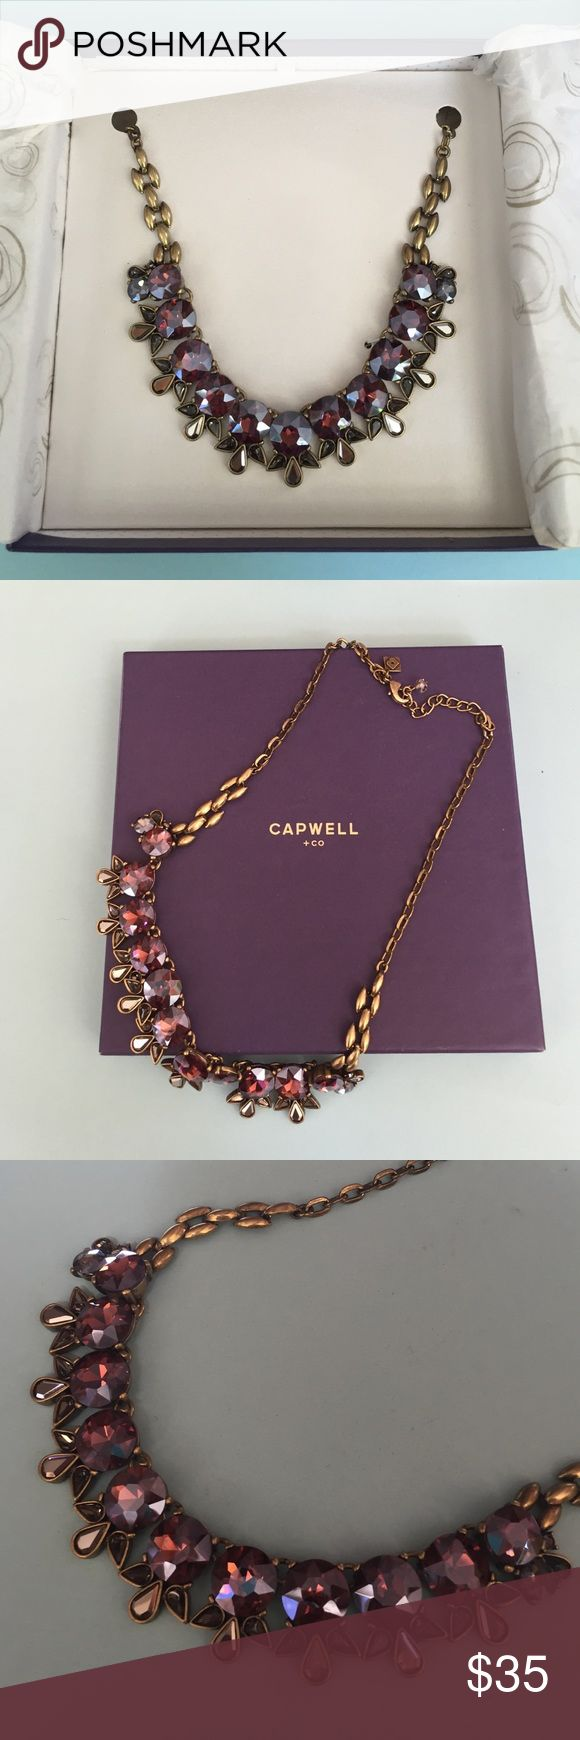 Capwell necklace Beautiful costume necklace from Birchbox!  Shiny purple stones with 3 teardrop stones attached to each. Bronze chain that is adjustable. Measures 21 inches total. About 10 inches to chest. capwell & co Jewelry Necklaces